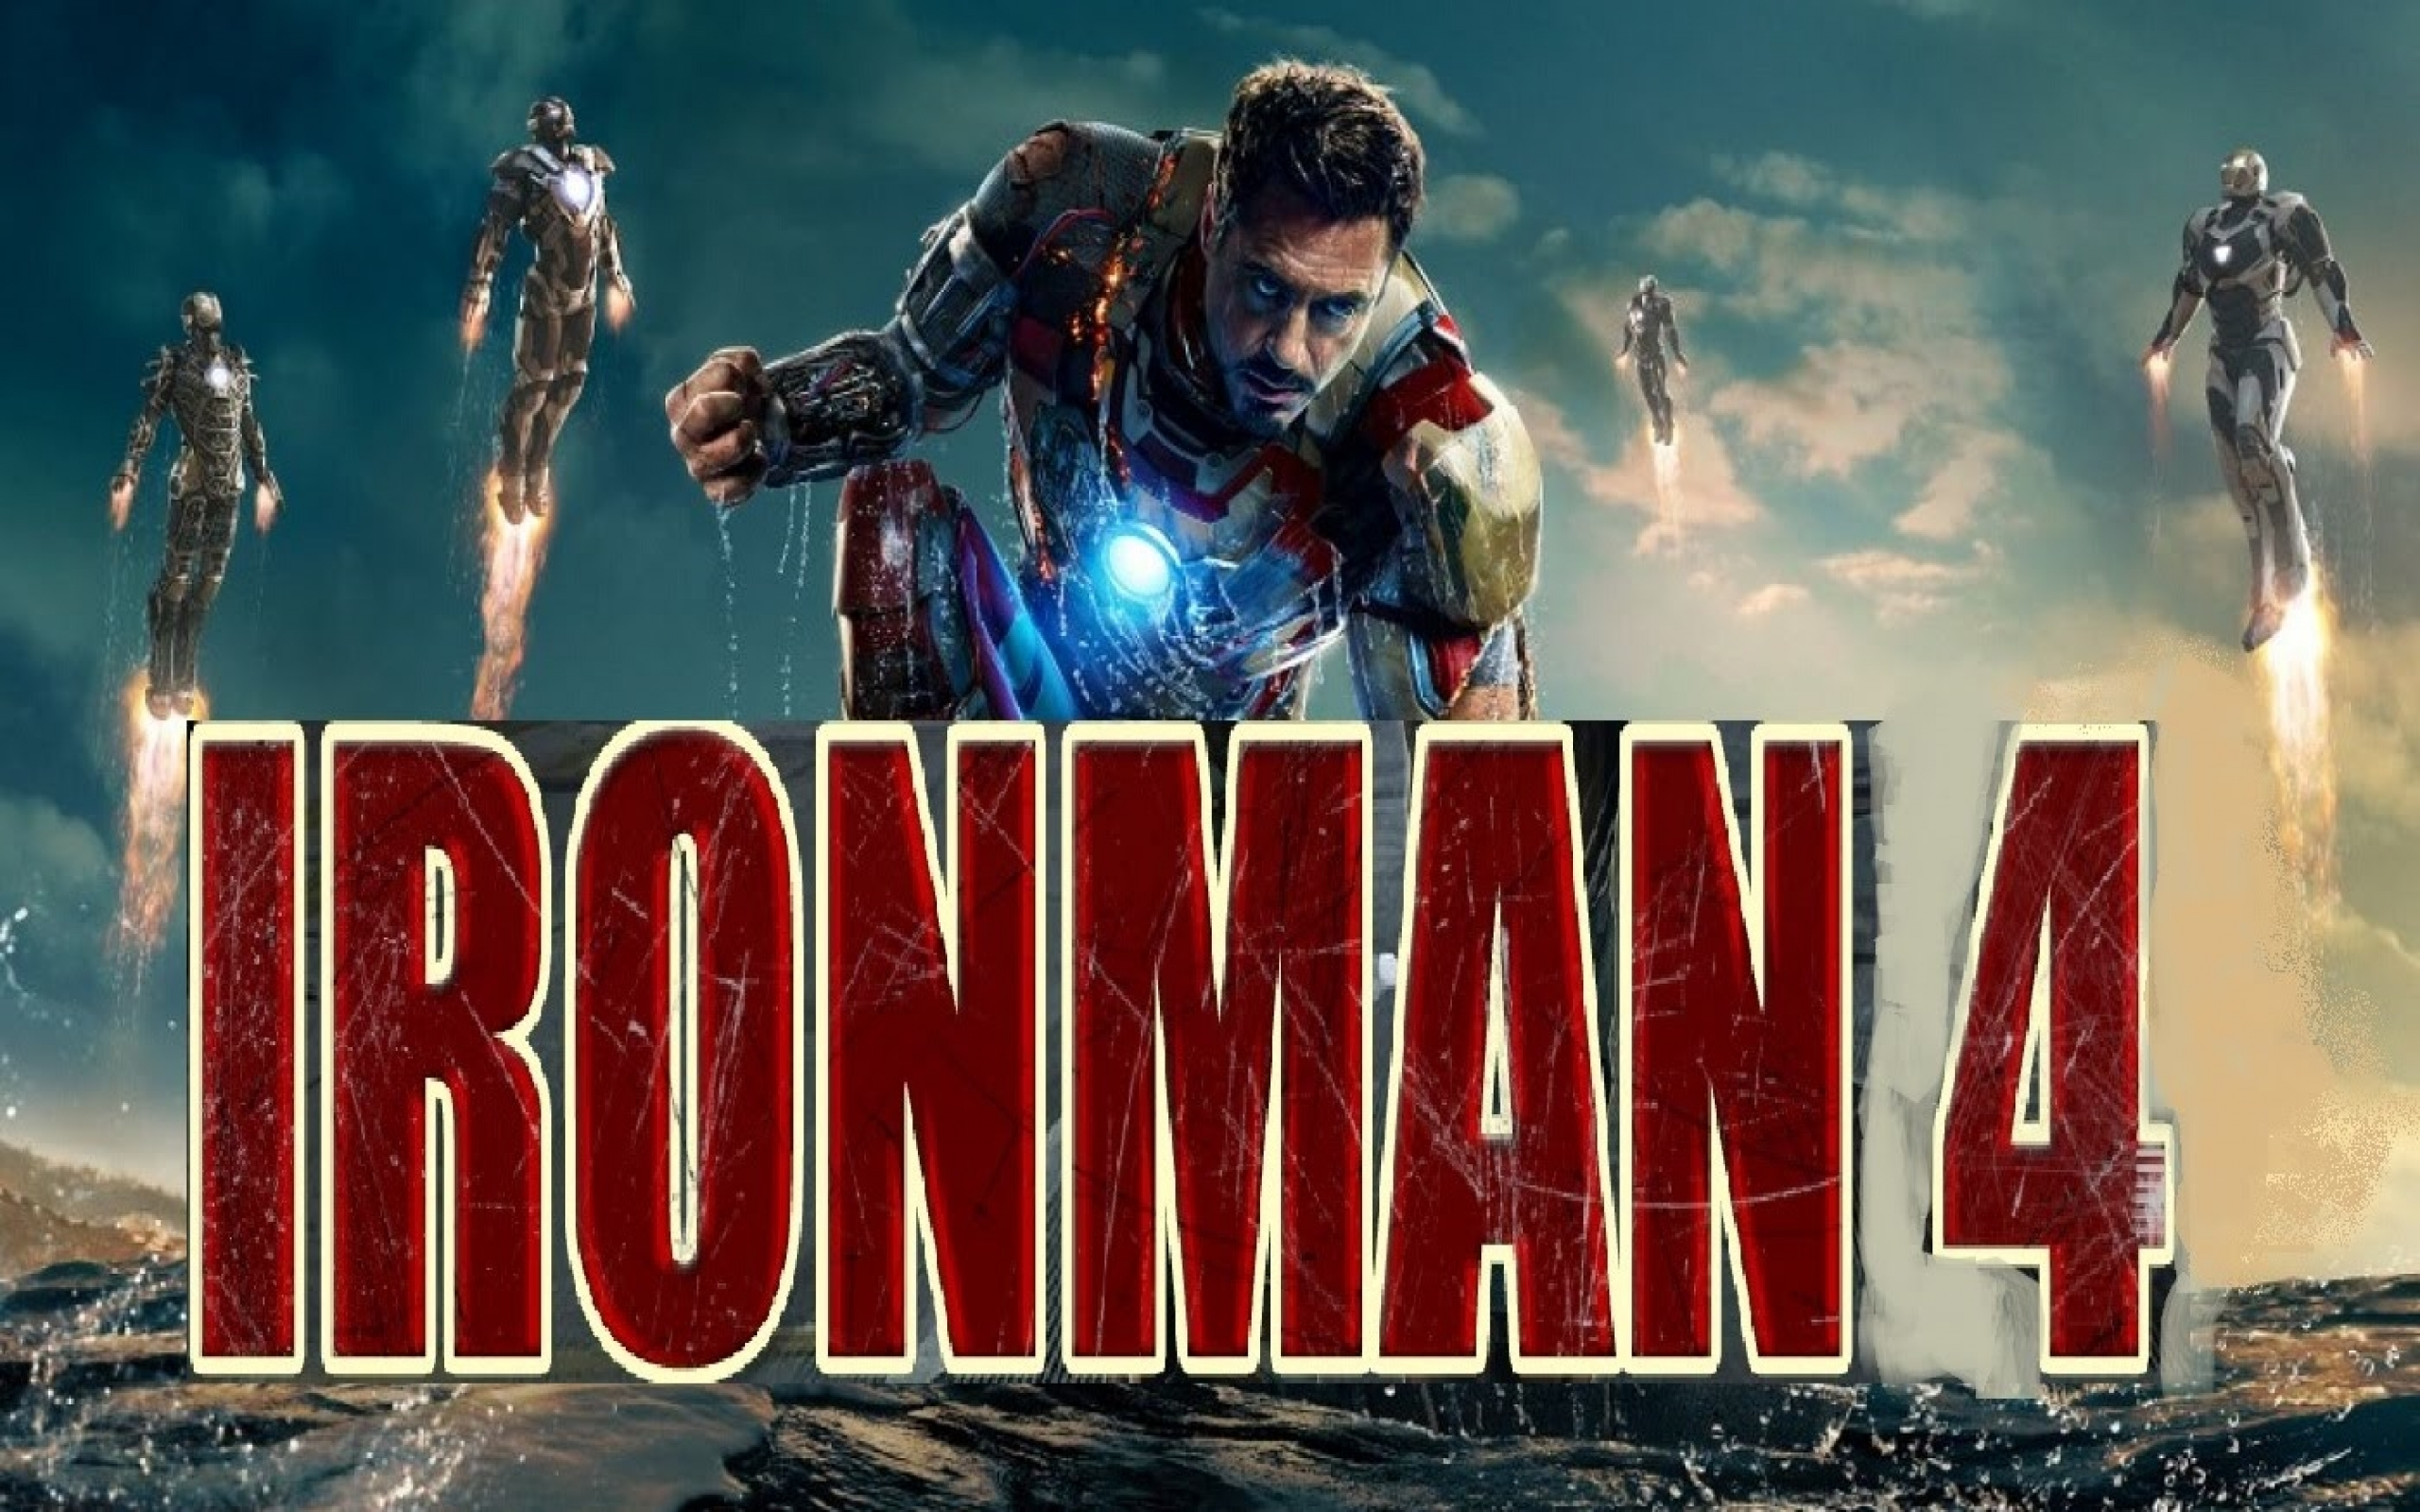 Iron man 4 hd free wallpaper download wide screen resolutions voltagebd Choice Image